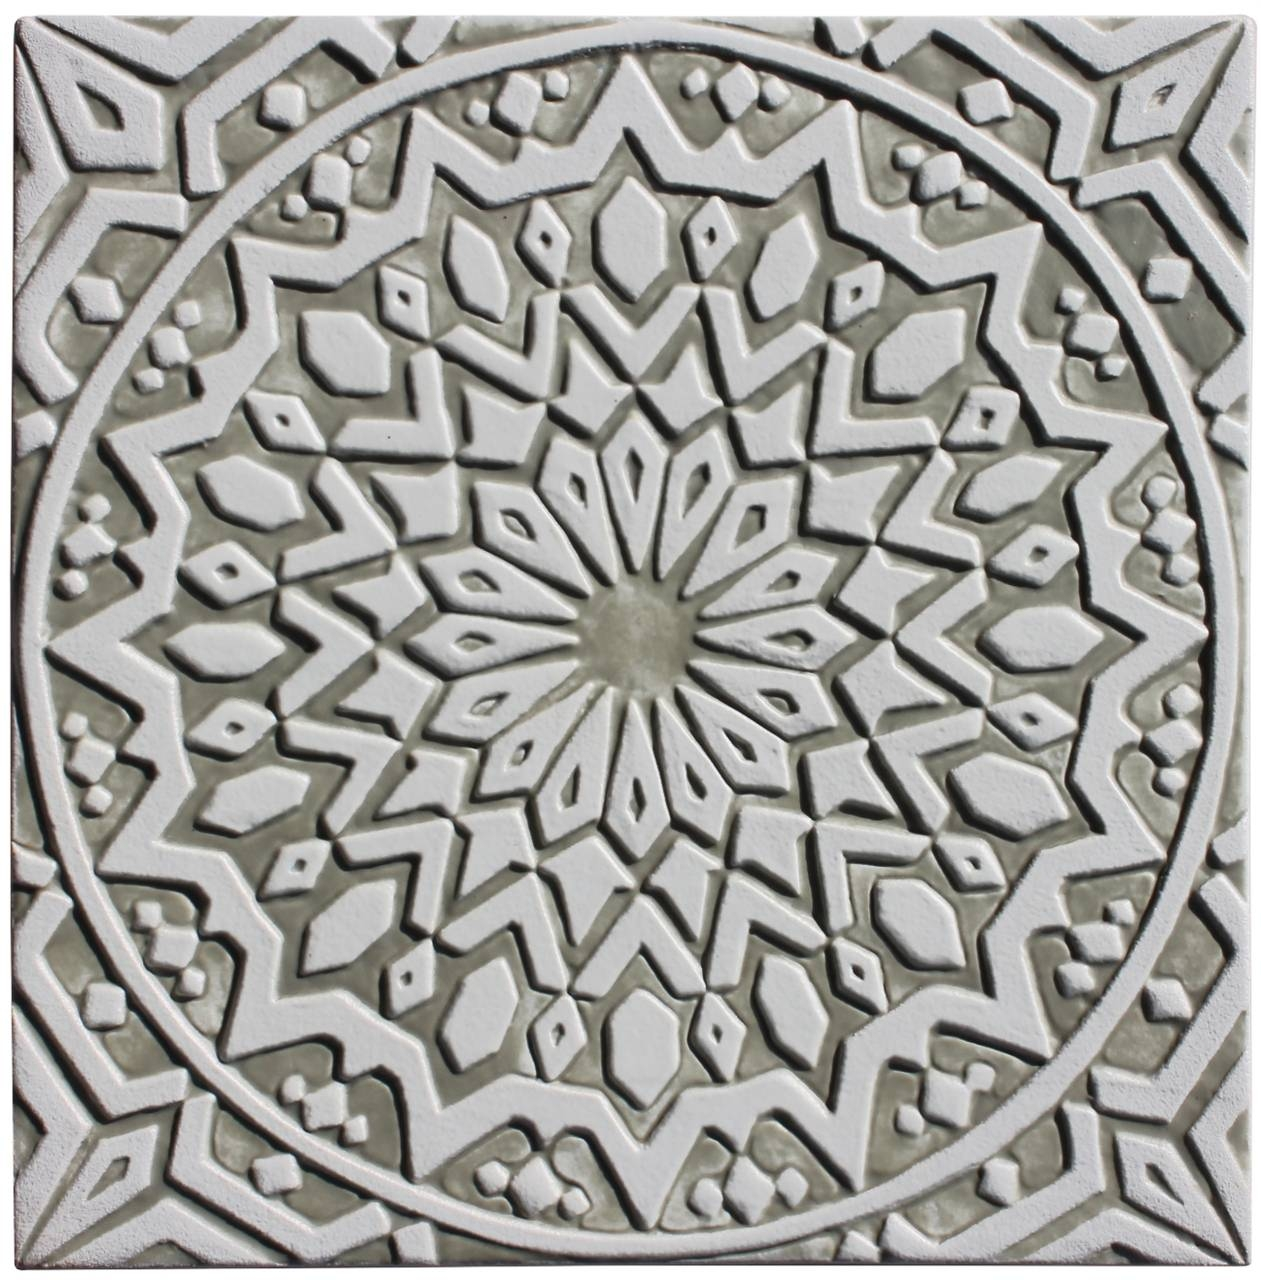 Wall Art Designs: Moroccan Wall Art Maroccan Ceramic Wall Art Home Throughout Current Moroccan Metal Wall Art (View 6 of 15)